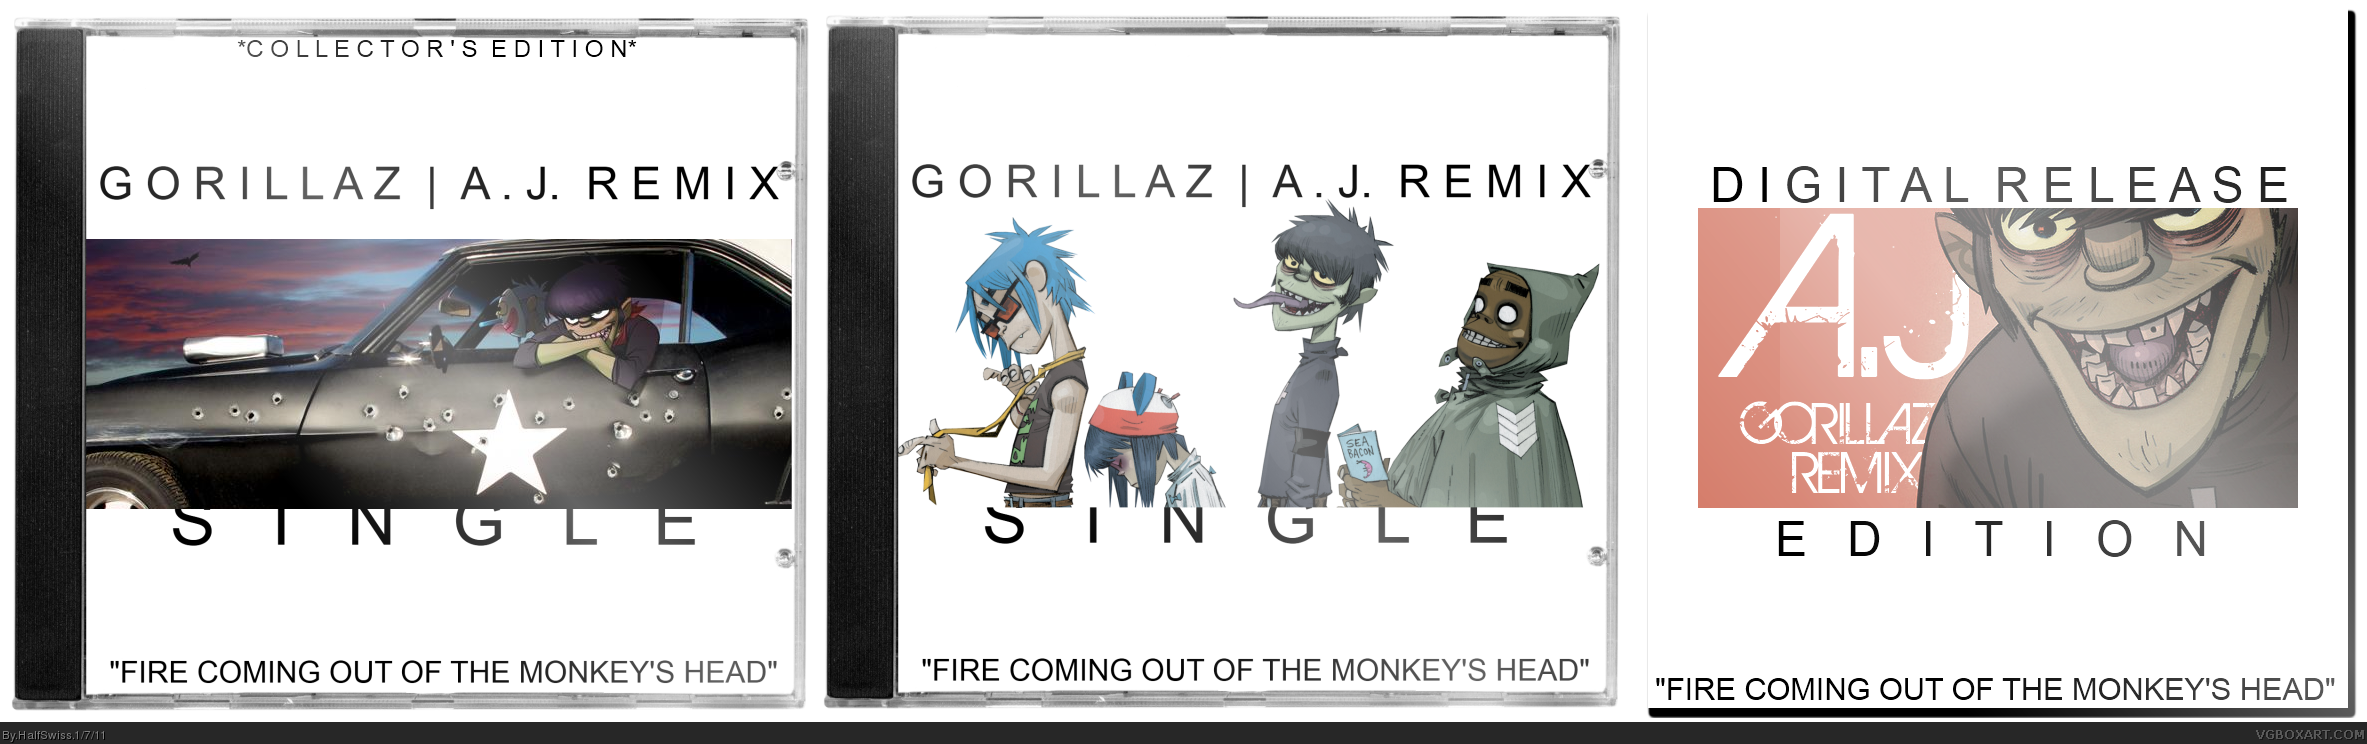 Gorillaz: Fire Coming Out... (A.J. Remix) - Single box cover